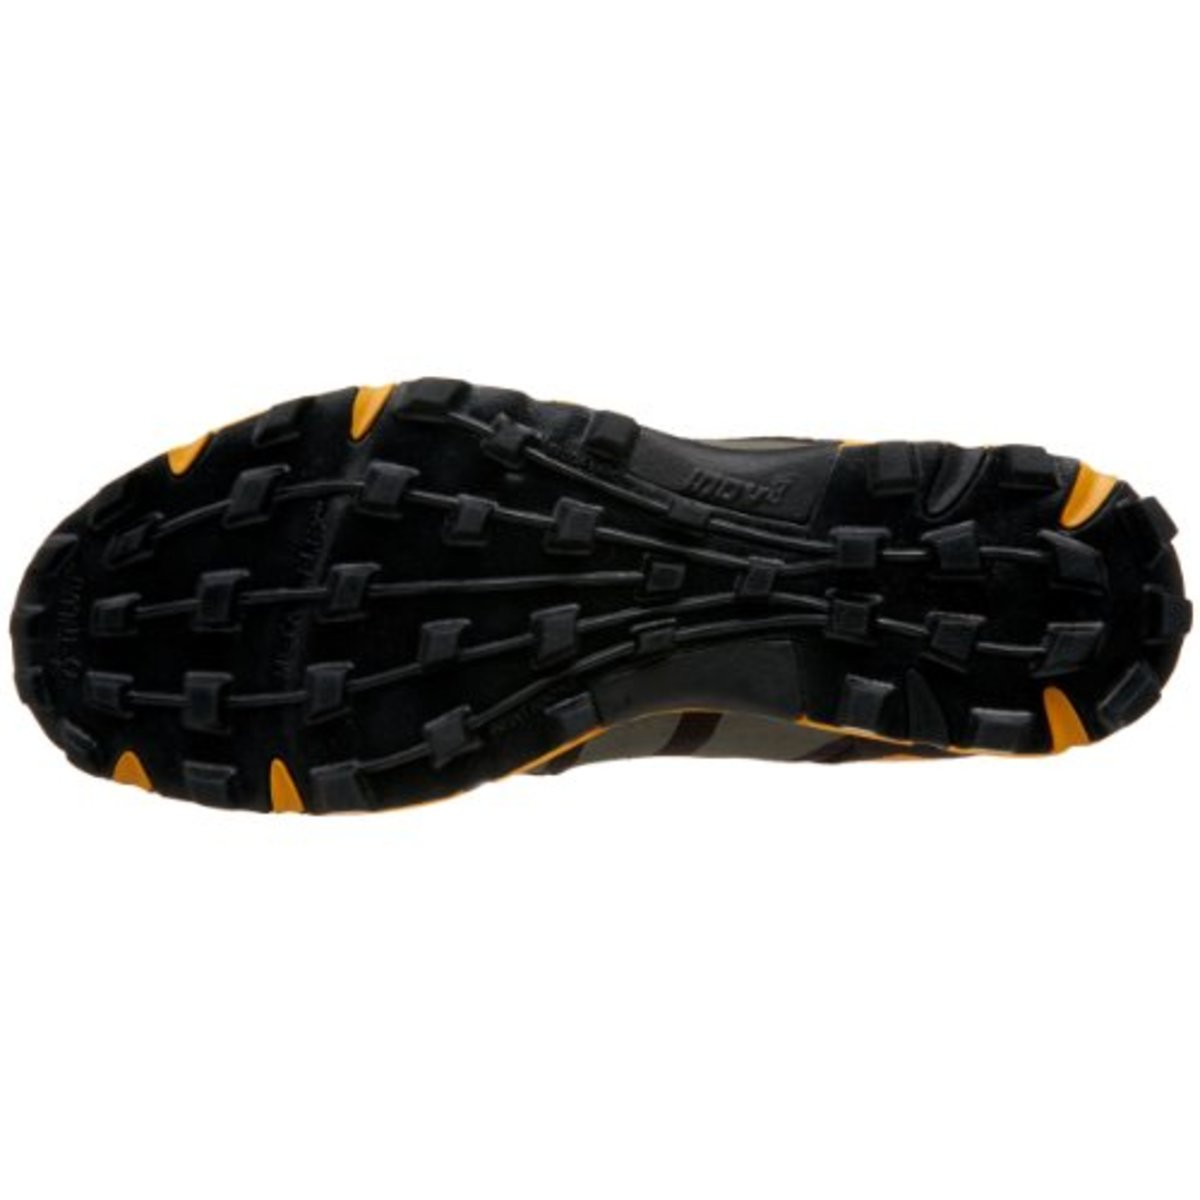 The soft rubber sole of the Talon 212 is great for scaling obstacles